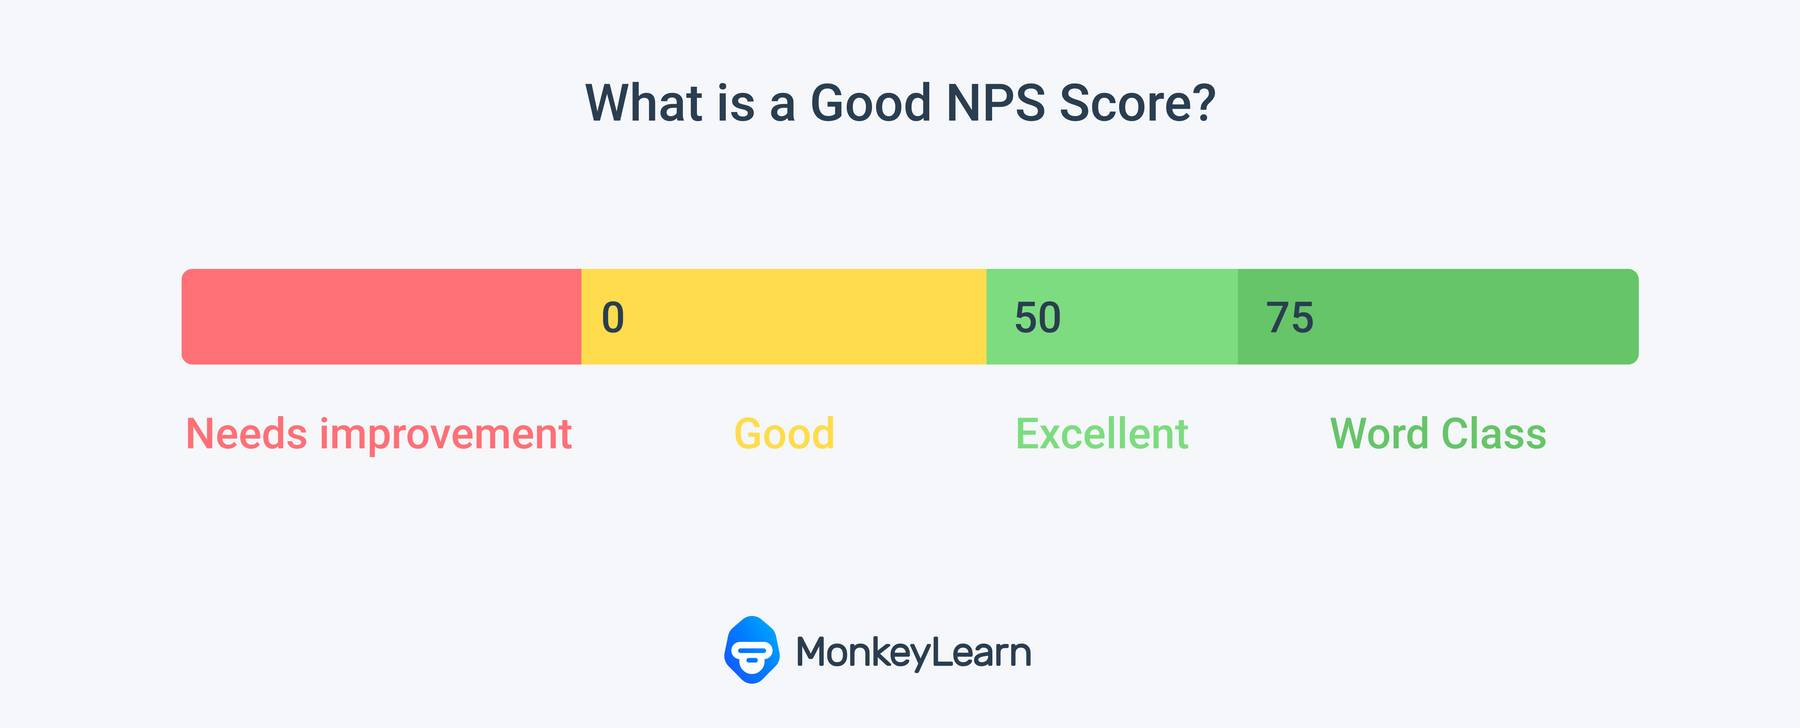 """NPS bar scale titled """"What is a good NPS score?"""". The scale is from -100 to +100. The red section is labeled as """"NEEDS IMPROVEMENT"""" (from -100 to 0), the yellow section is labeled as """"Good"""" (from 0 to +30), the light green section is labeled as """"GREAT"""" (from +30 to +70), and the dark green section is labeled as """"EXCELLENT"""" (from +70 to +100)."""